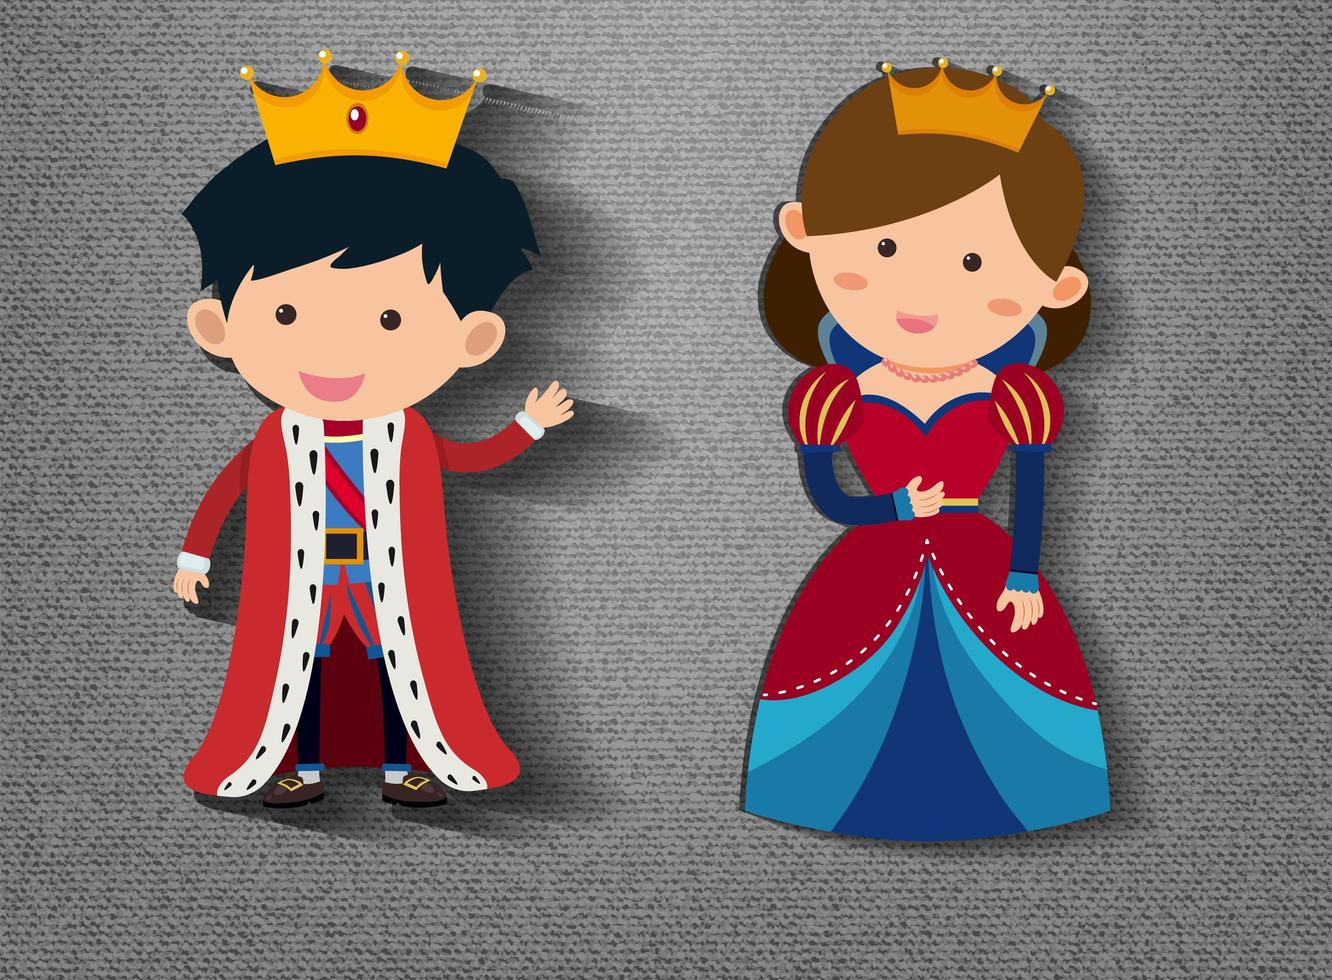 Little king and queen cartoon character on grey background vector